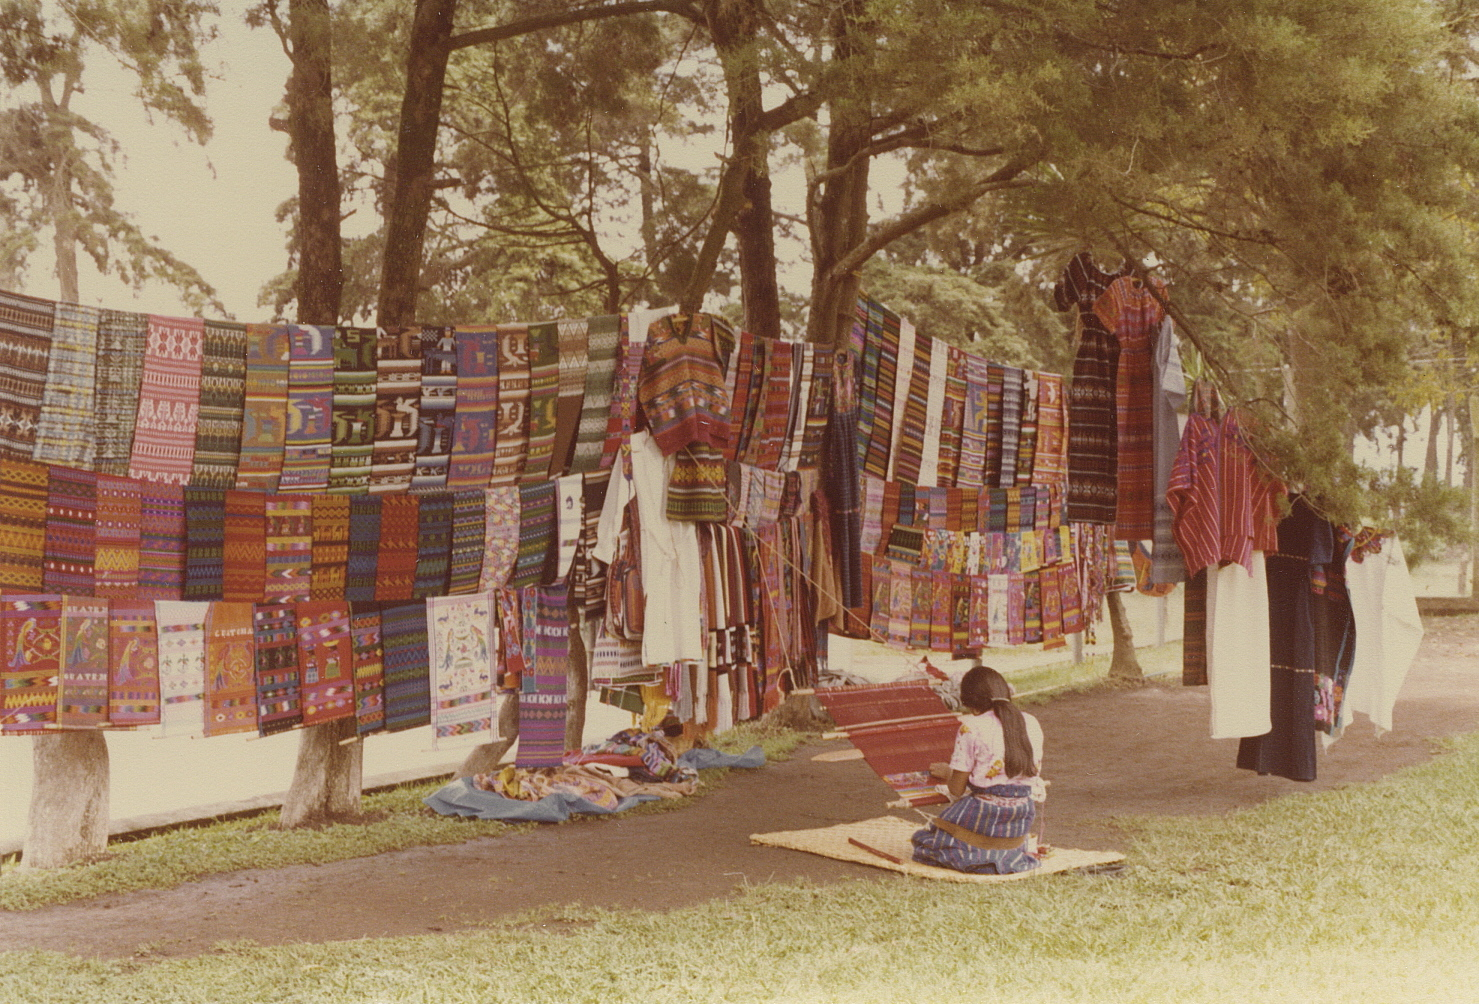 Brilliantly dyed traditional woven textiles of Guatemala, and woman weaving on a backstrap loom.